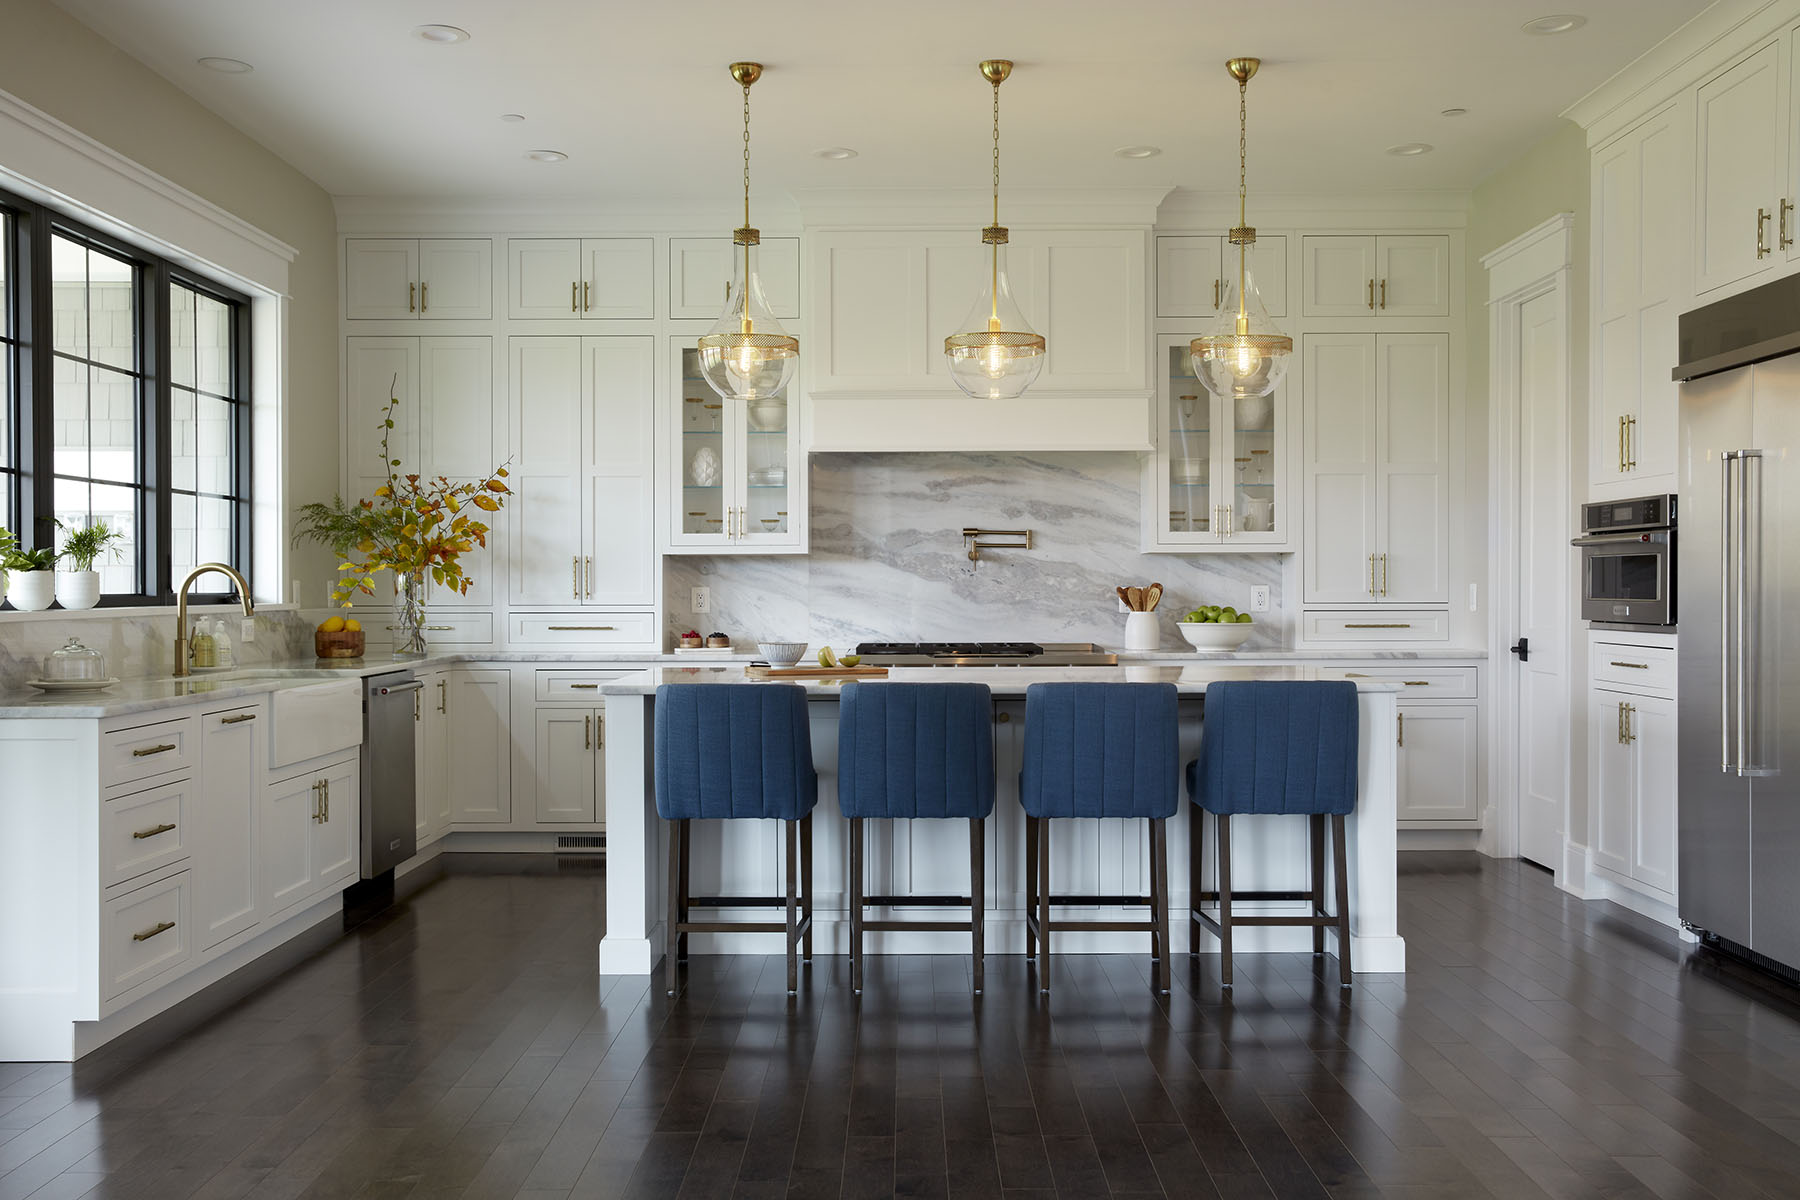 Modern white kitchen with gold fixtures and navy stools